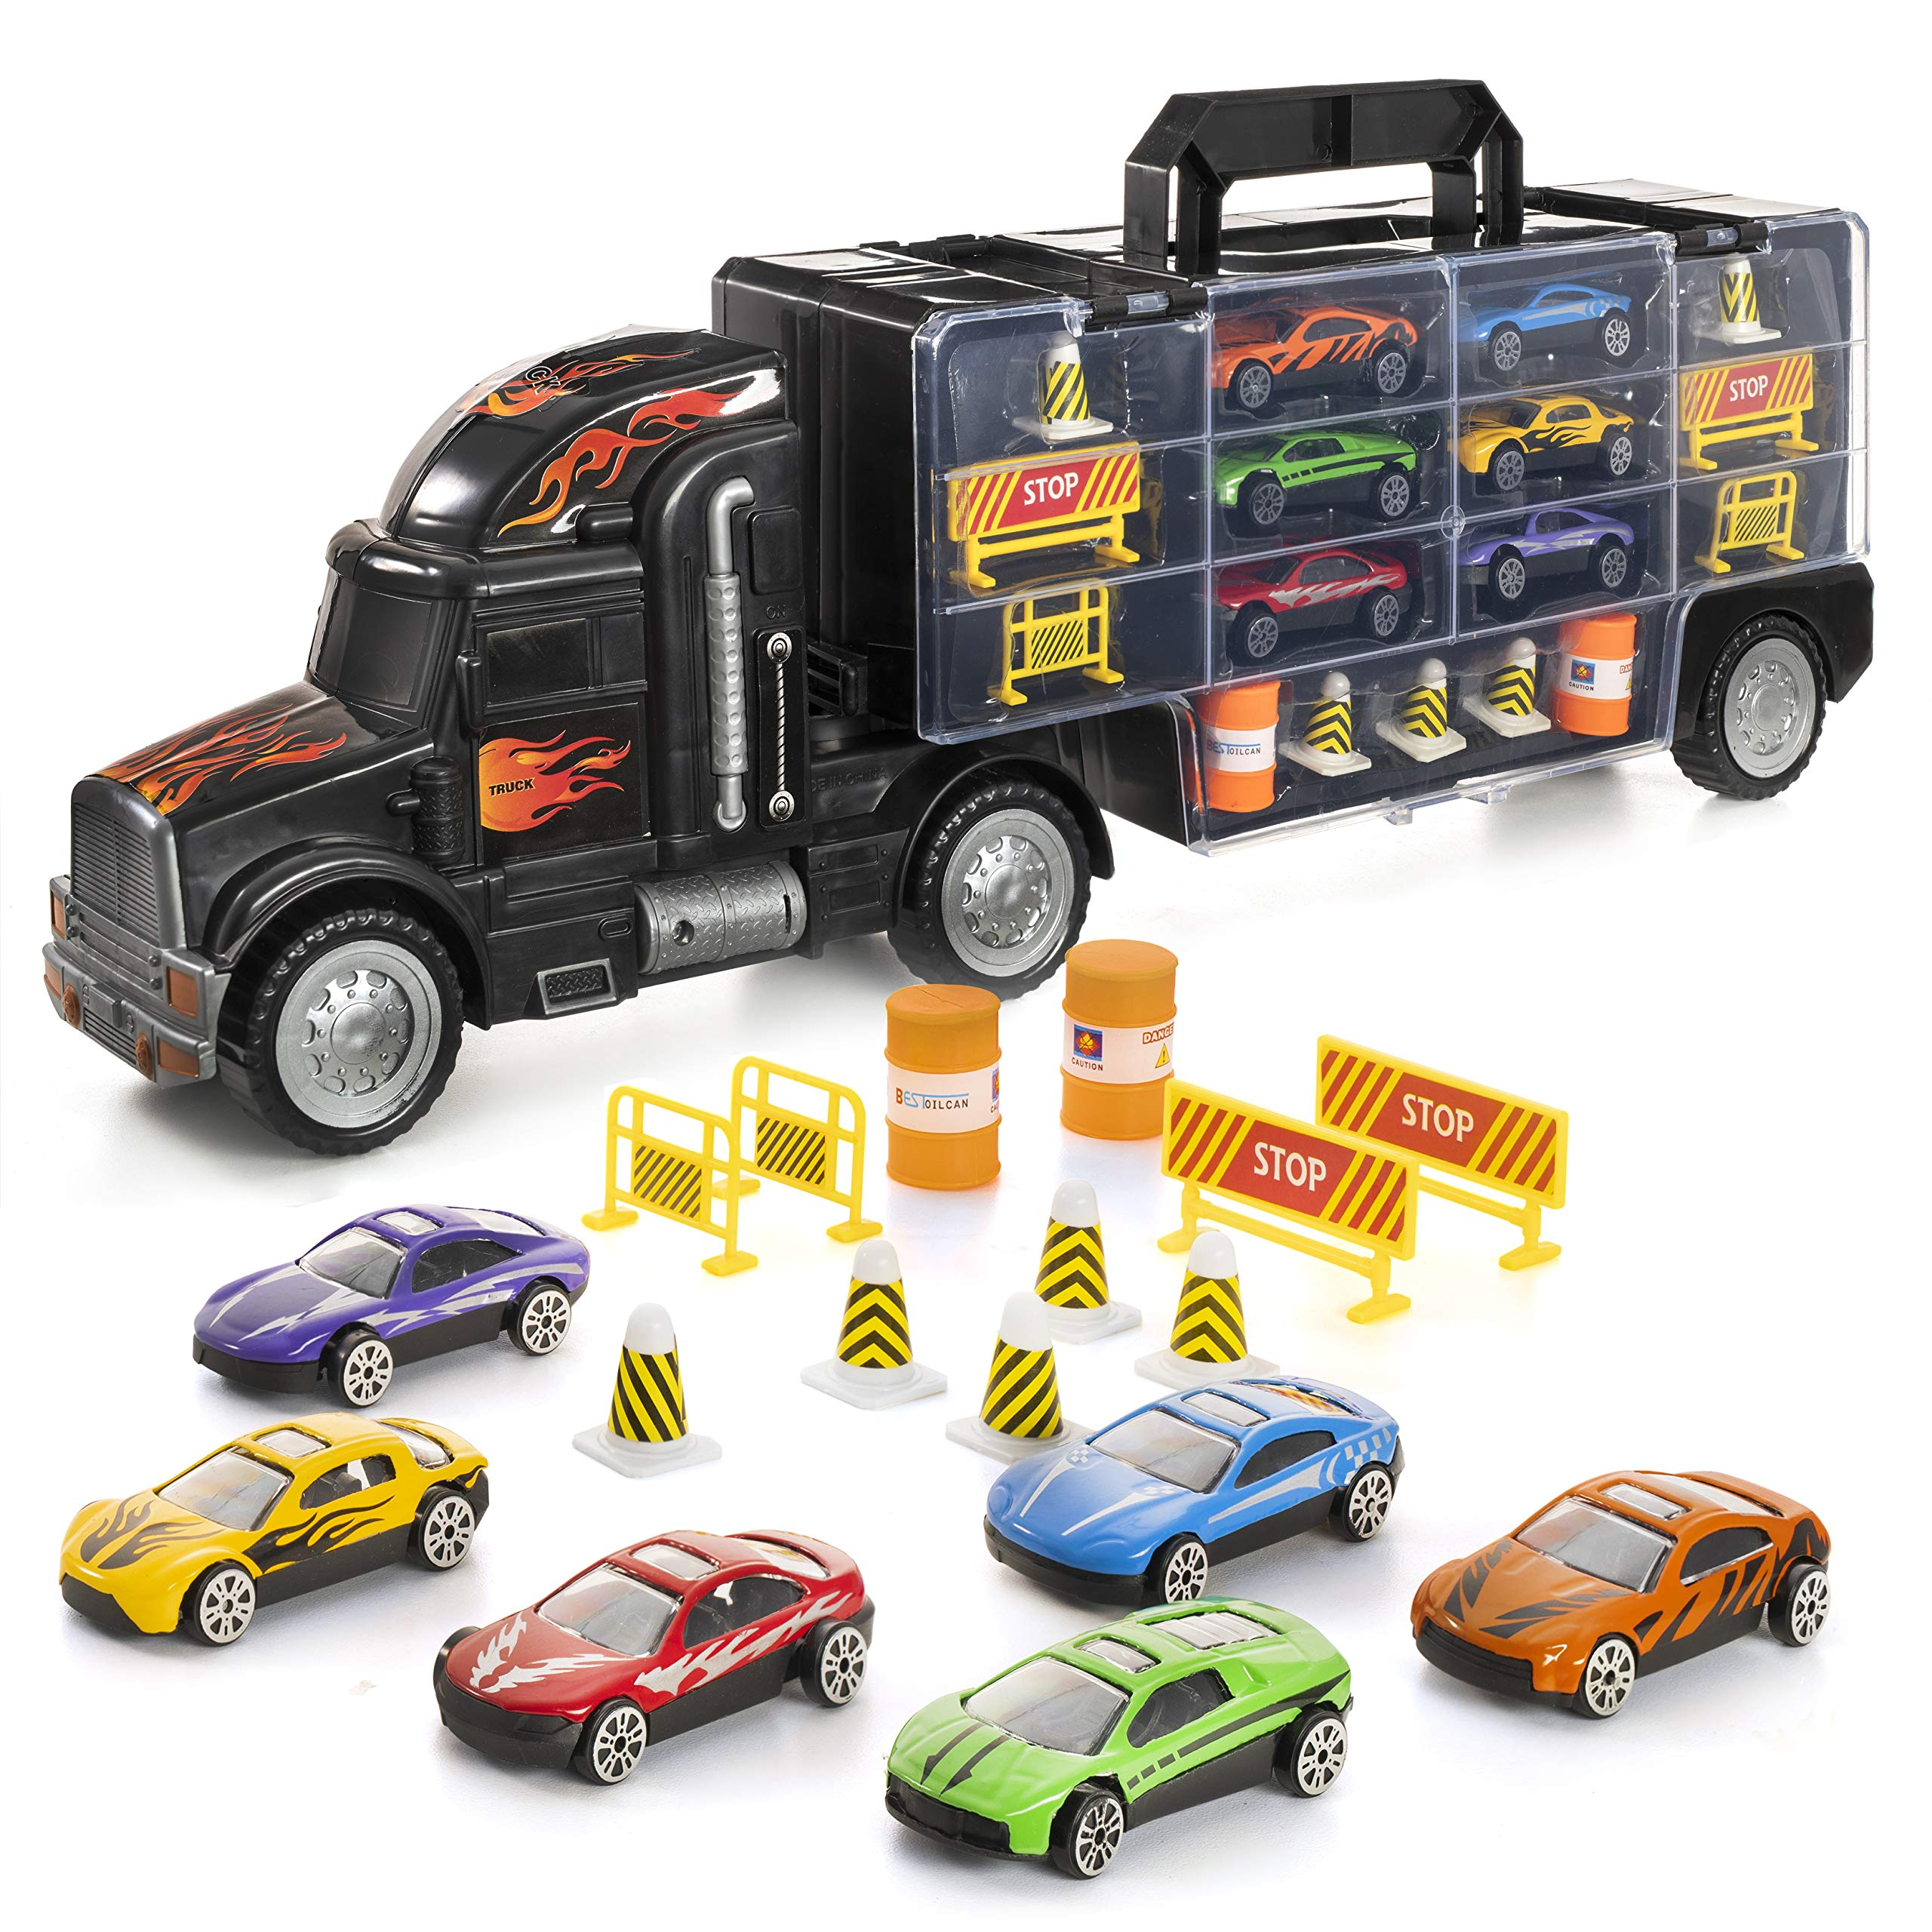 Prextex 19'' Car Carrier Toy Truck with 6 Toy Cars and Road Block Accessories - Toy Vehicle Transporter for Boys and Toddlers